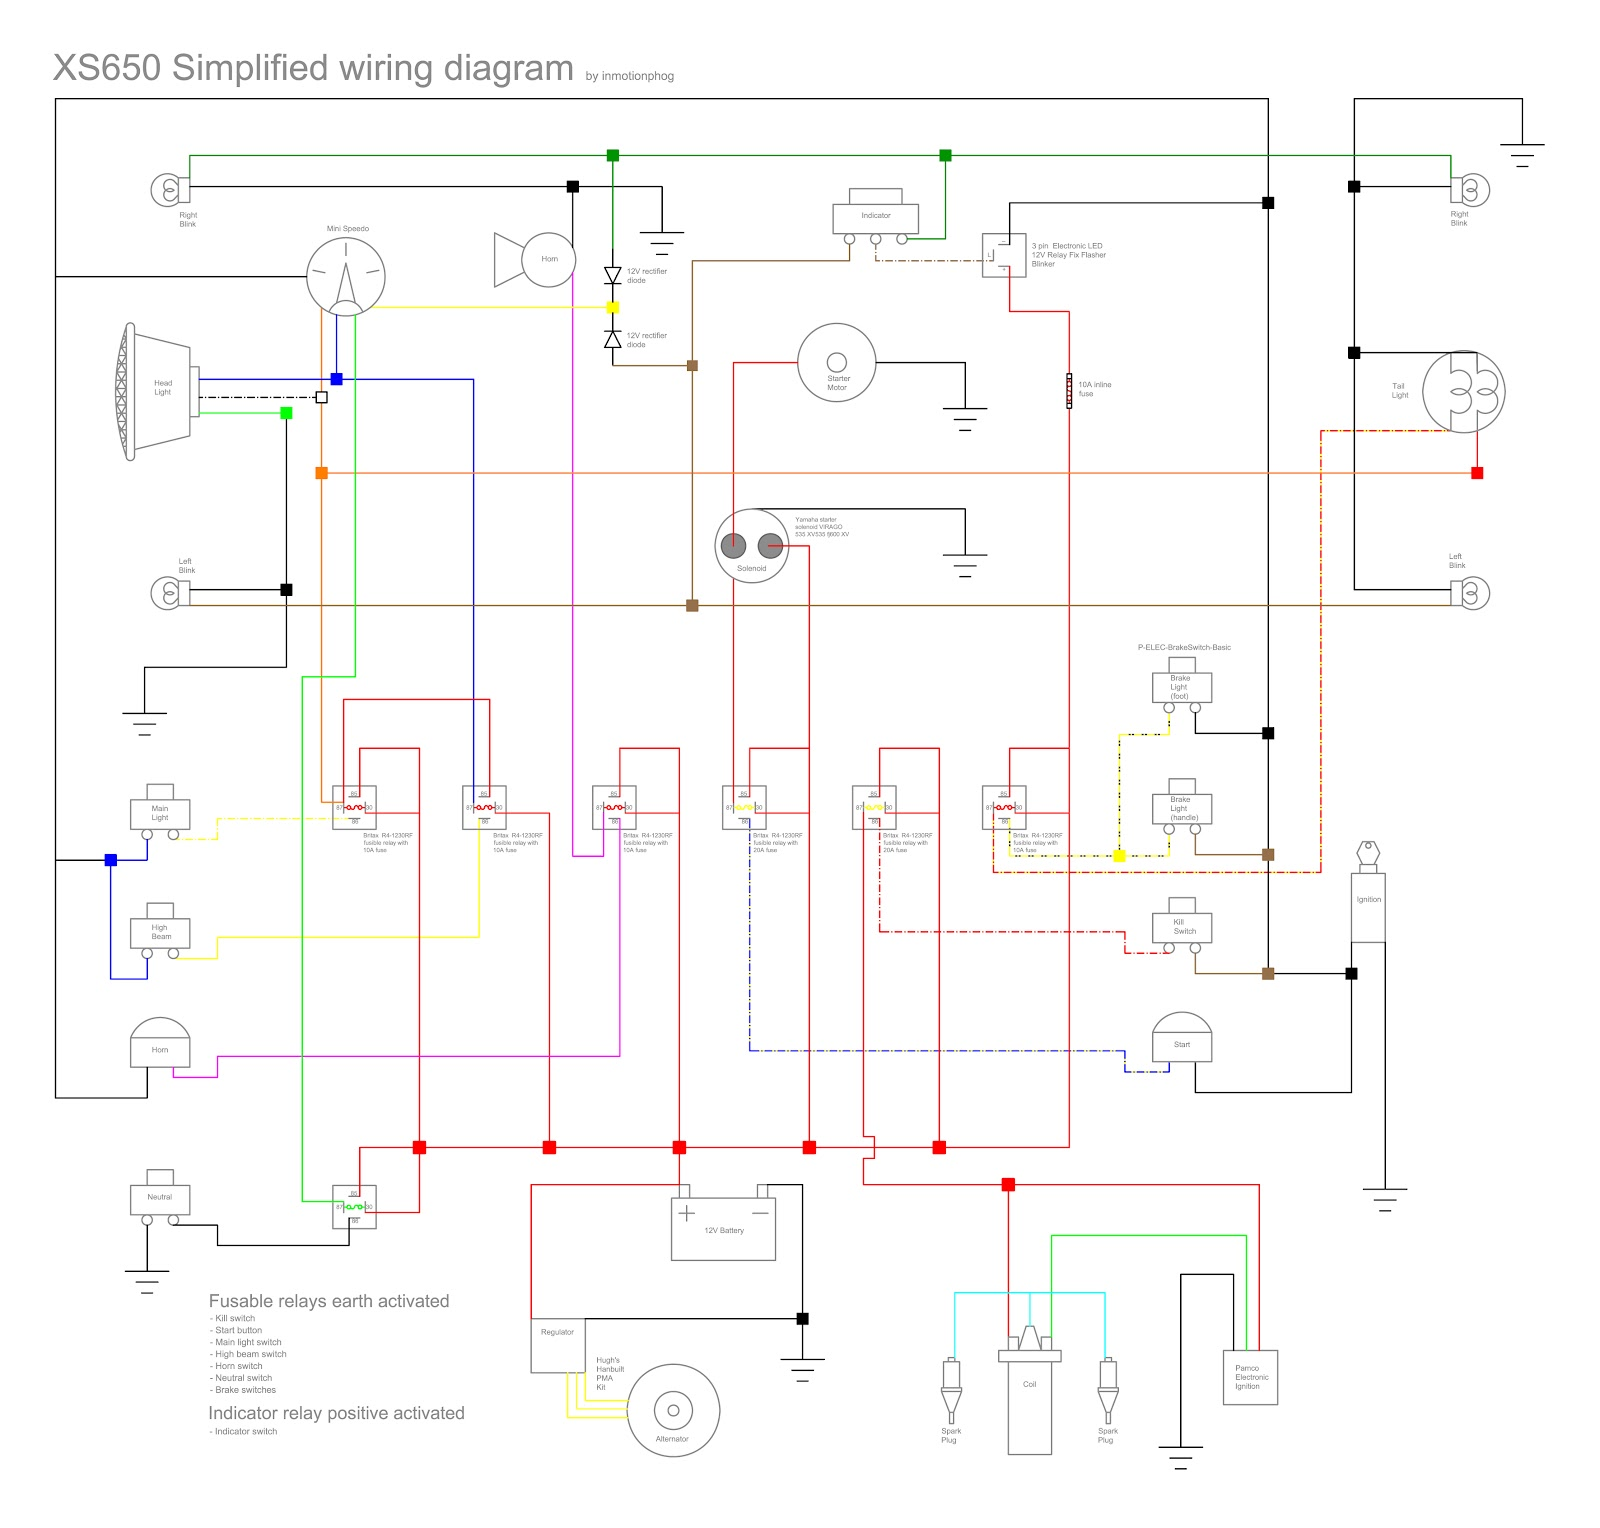 XS650+Electrical+Plan Xs Wiring Harness Diagram on xs650 chopper wiring, xs650 simplified wiring, xs650 1982 rectifier wiring, xs650 bobber wiring,